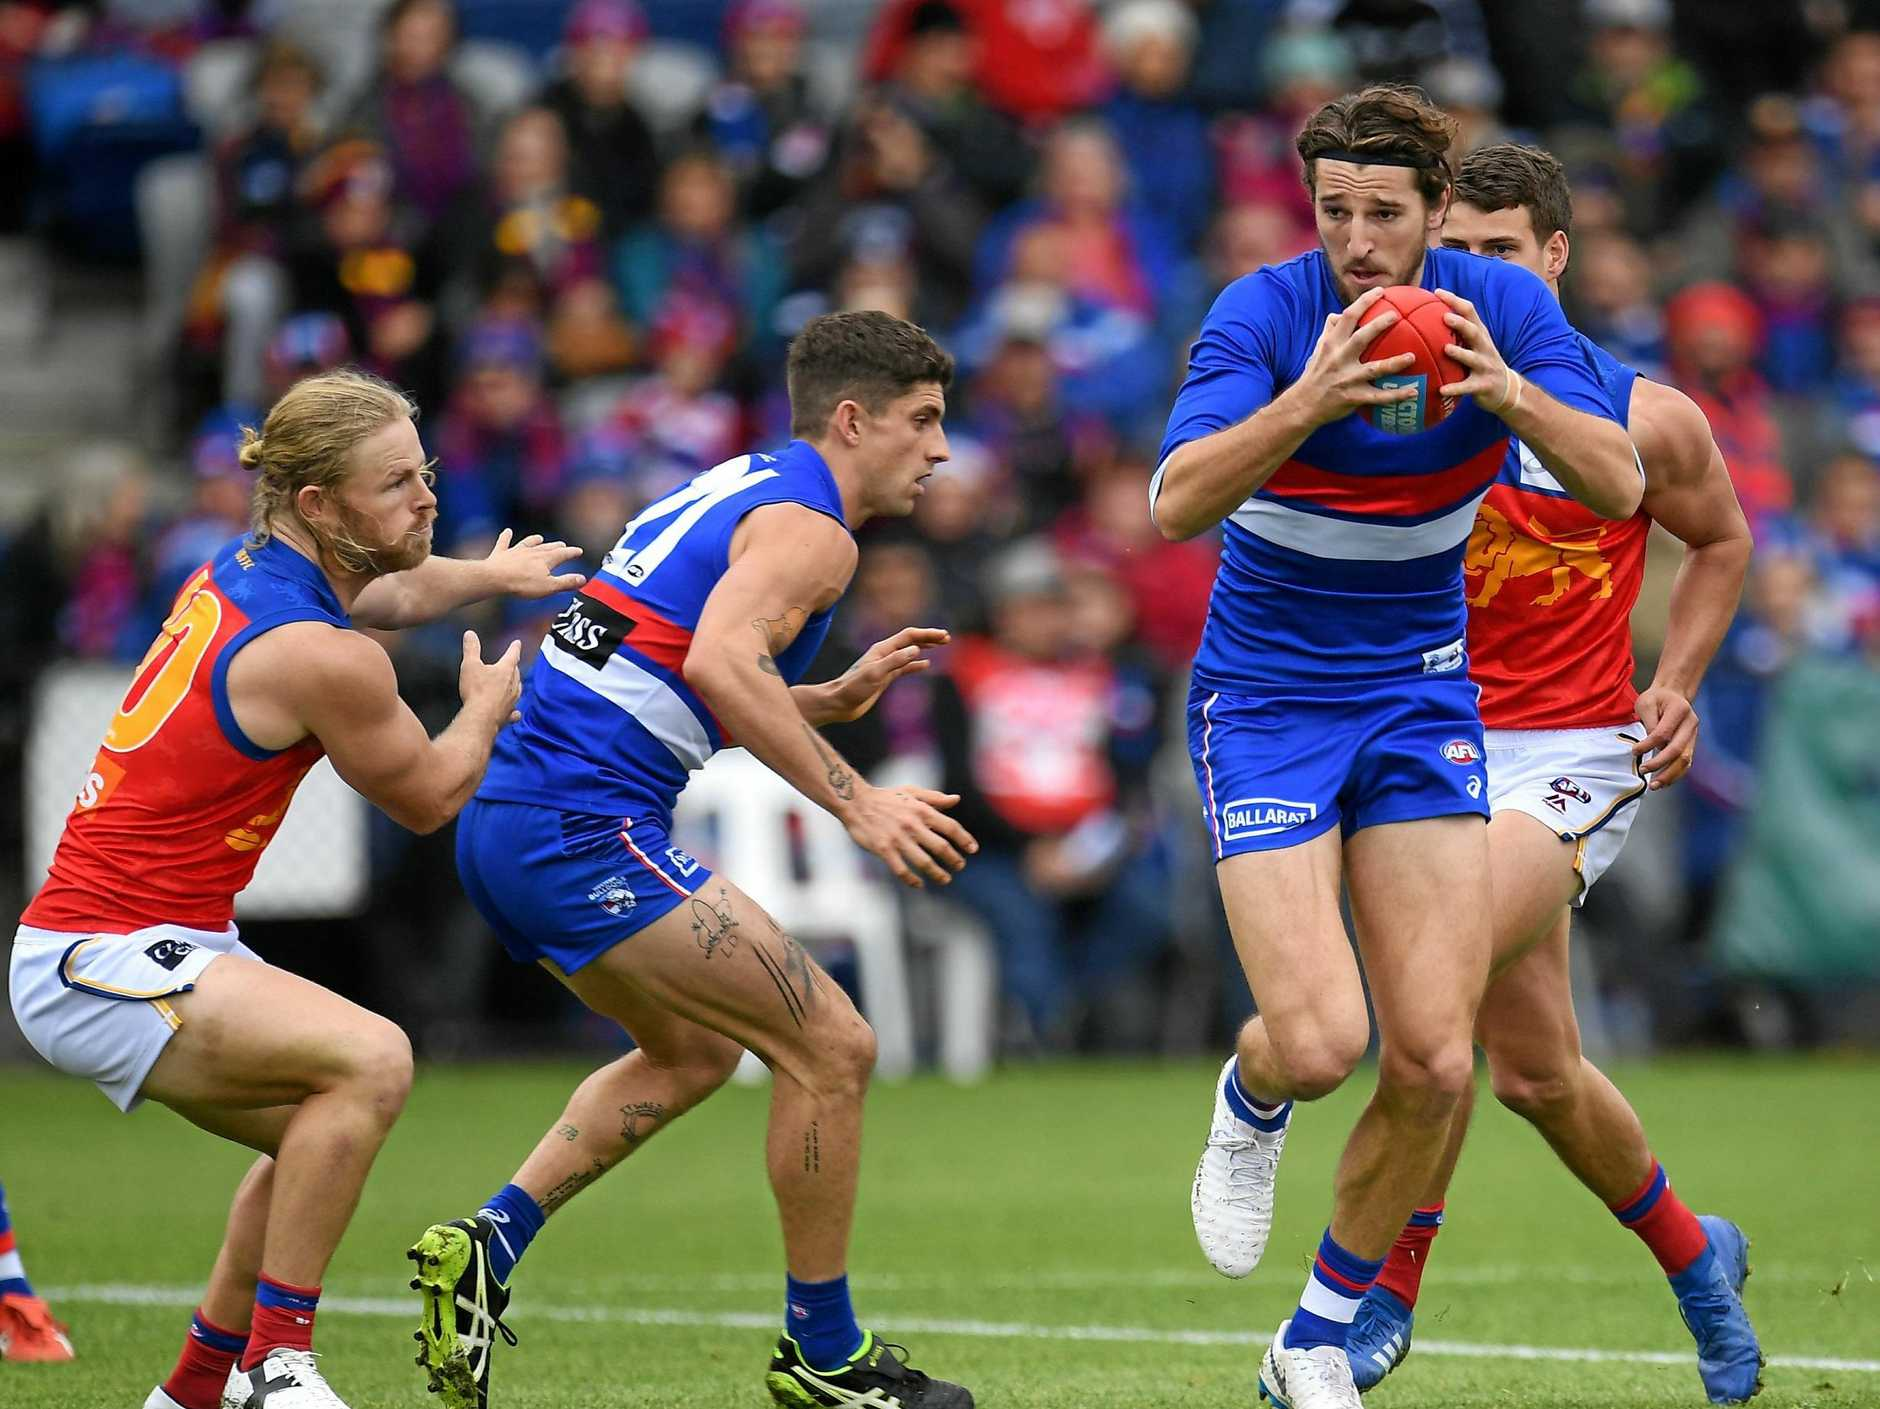 The Bulldogs' Marcus Bontempelli has possession as the Lions close in. Picture: Julian Smith/AAP